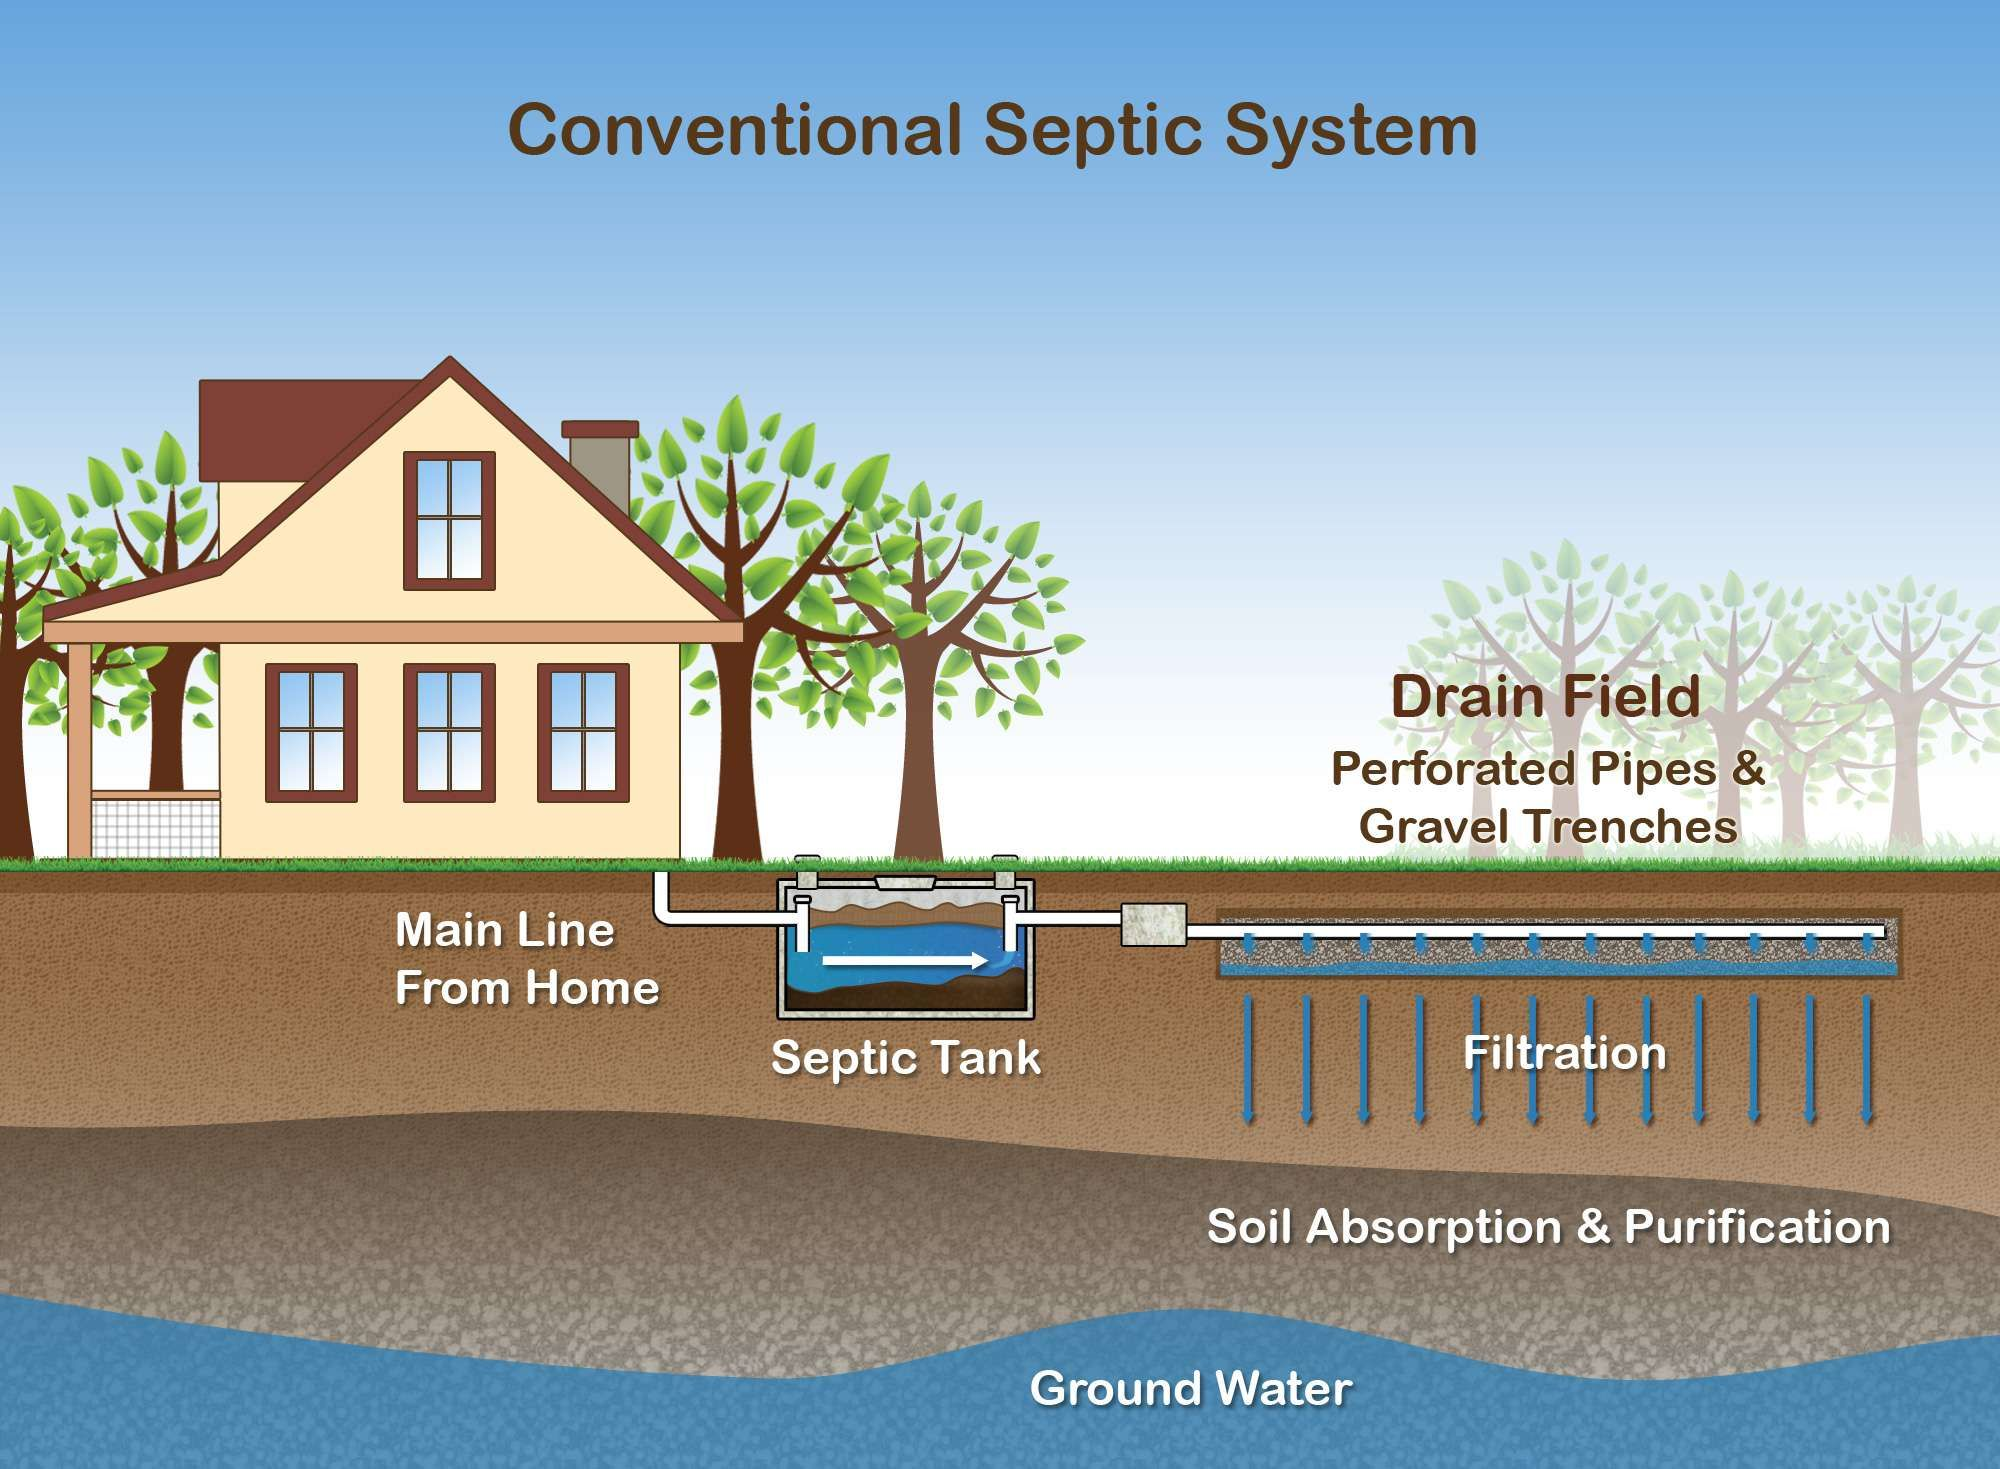 Septic tank how it works-Houston TX Septic Tank Pumping, Installation, & Repairs-We offer Septic Service & Repairs, Septic Tank Installations, Septic Tank Cleaning, Commercial, Septic System, Drain Cleaning, Line Snaking, Portable Toilet, Grease Trap Pumping & Cleaning, Septic Tank Pumping, Sewage Pump, Sewer Line Repair, Septic Tank Replacement, Septic Maintenance, Sewer Line Replacement, Porta Potty Rentals, and more.